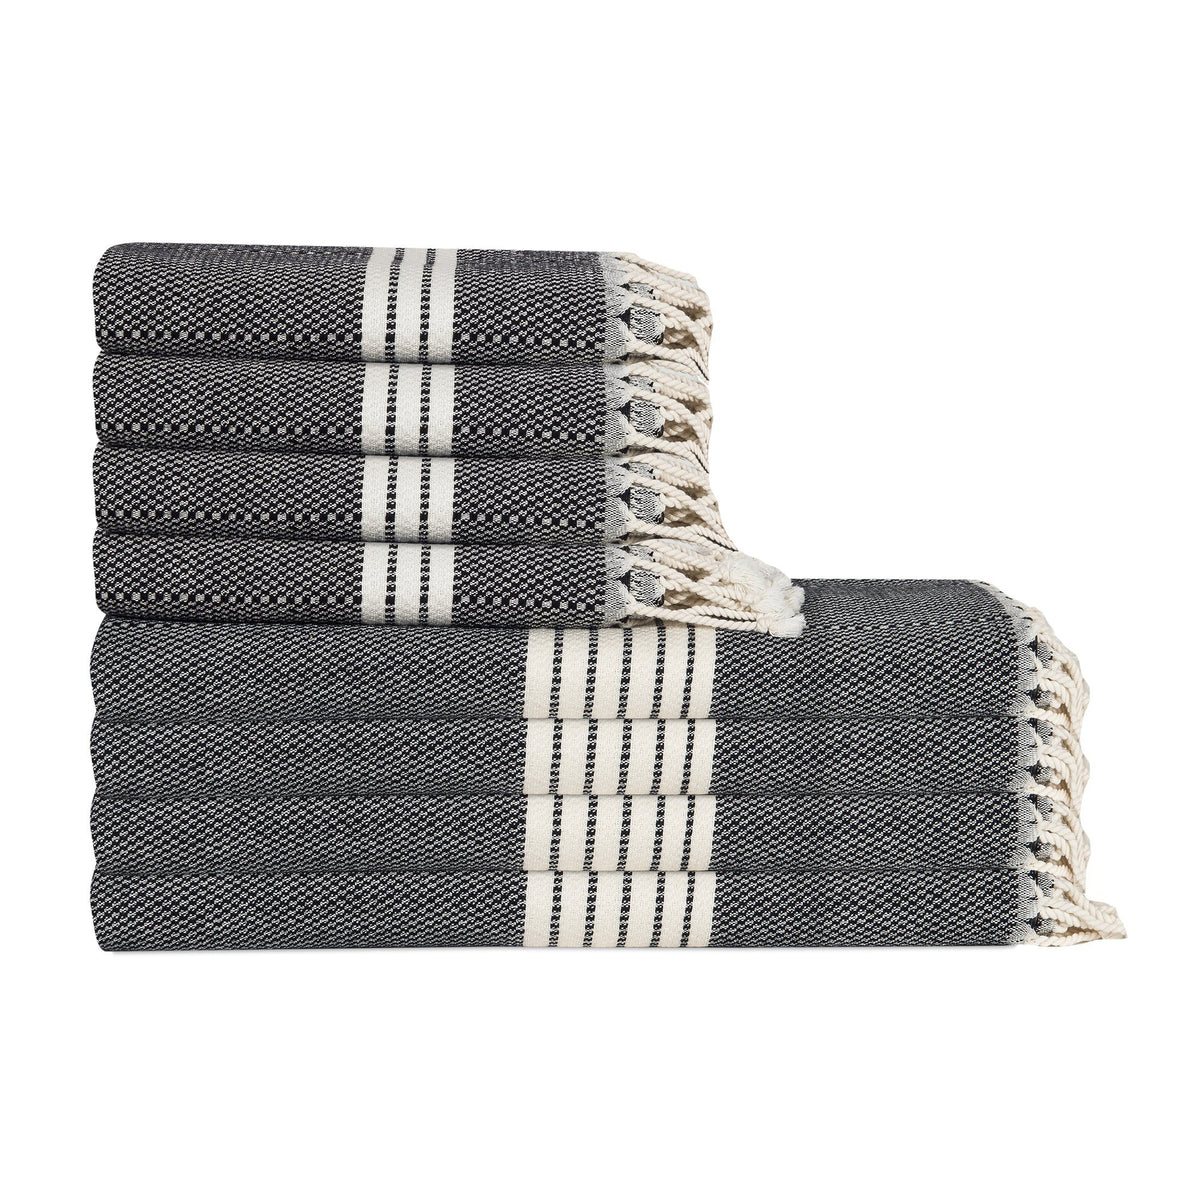 Newport Turkish Towel Bundle